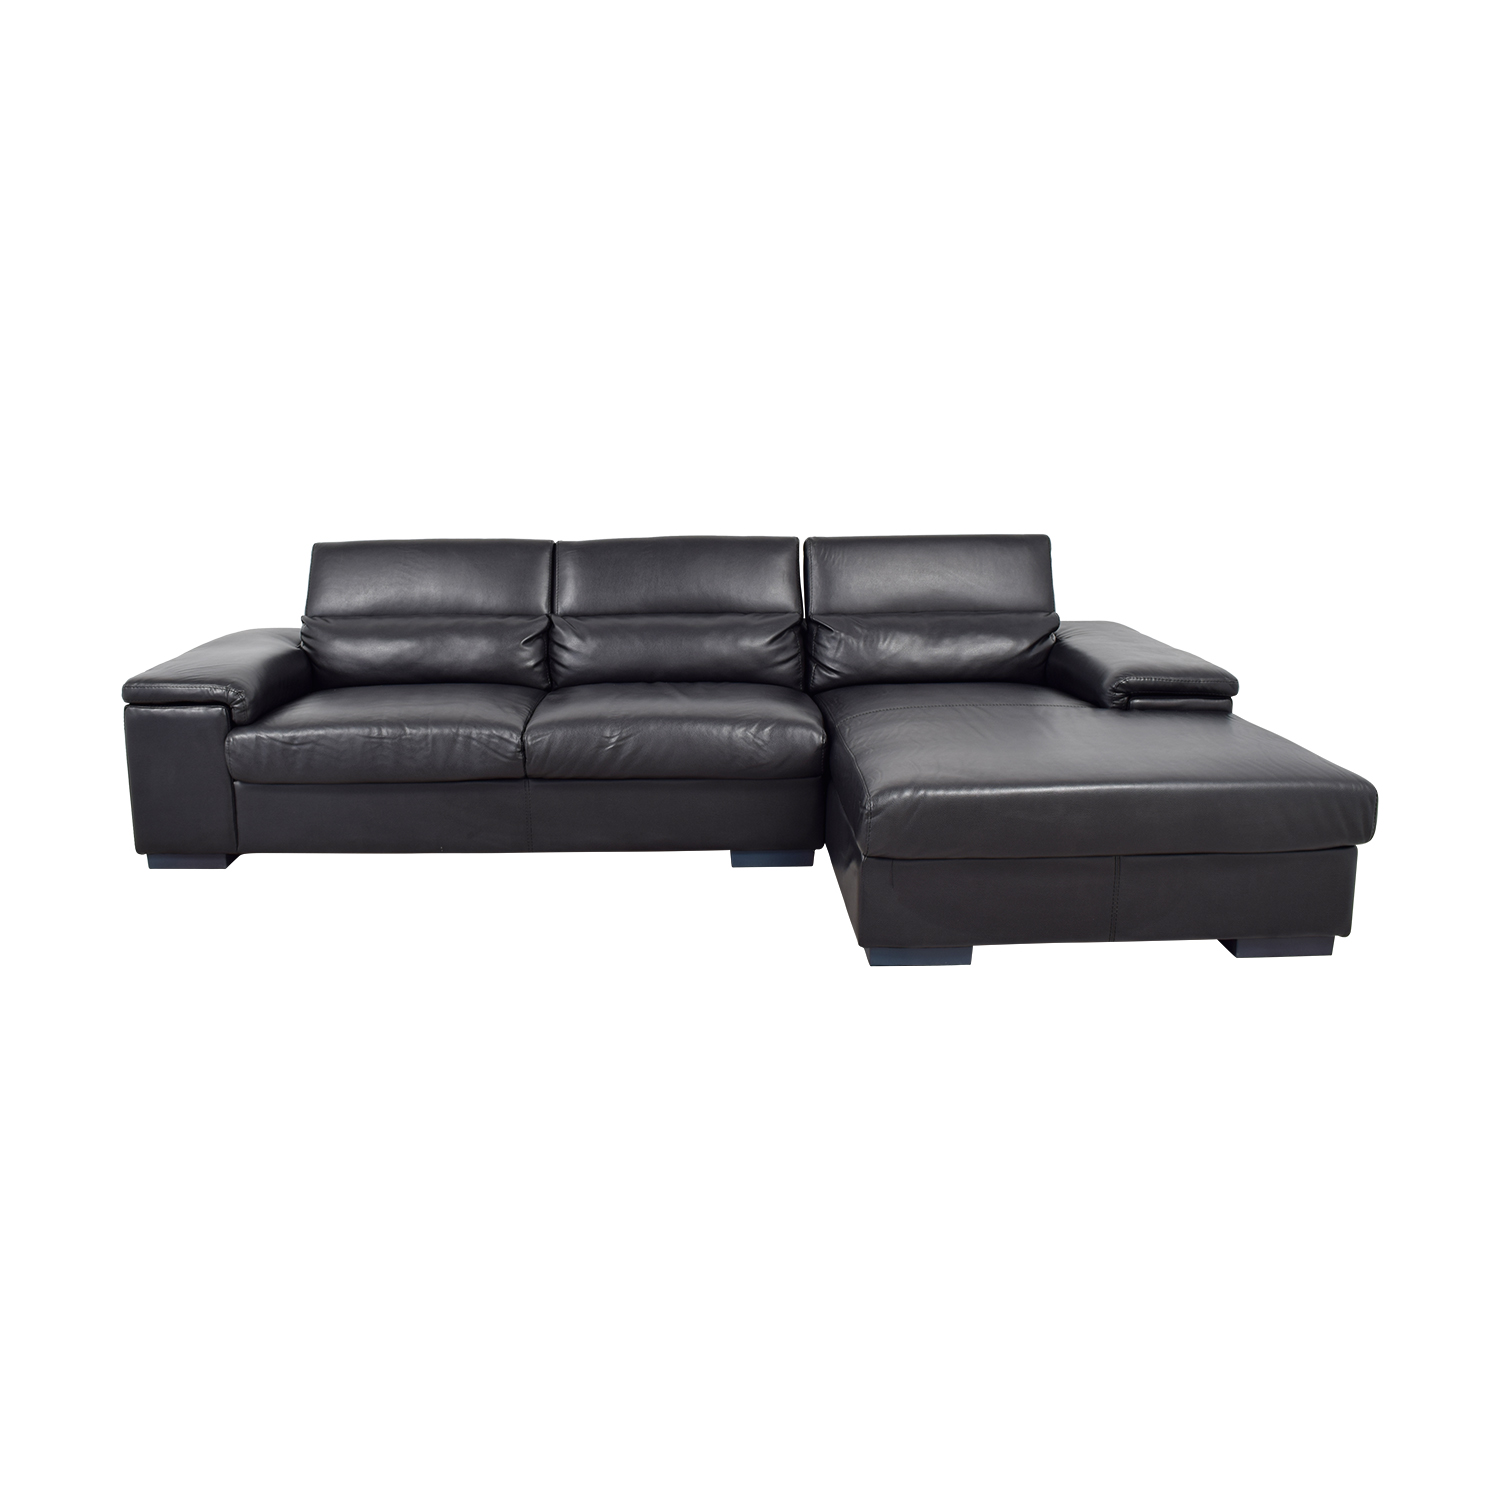 Black Leather Right Chaise Sectional on sale